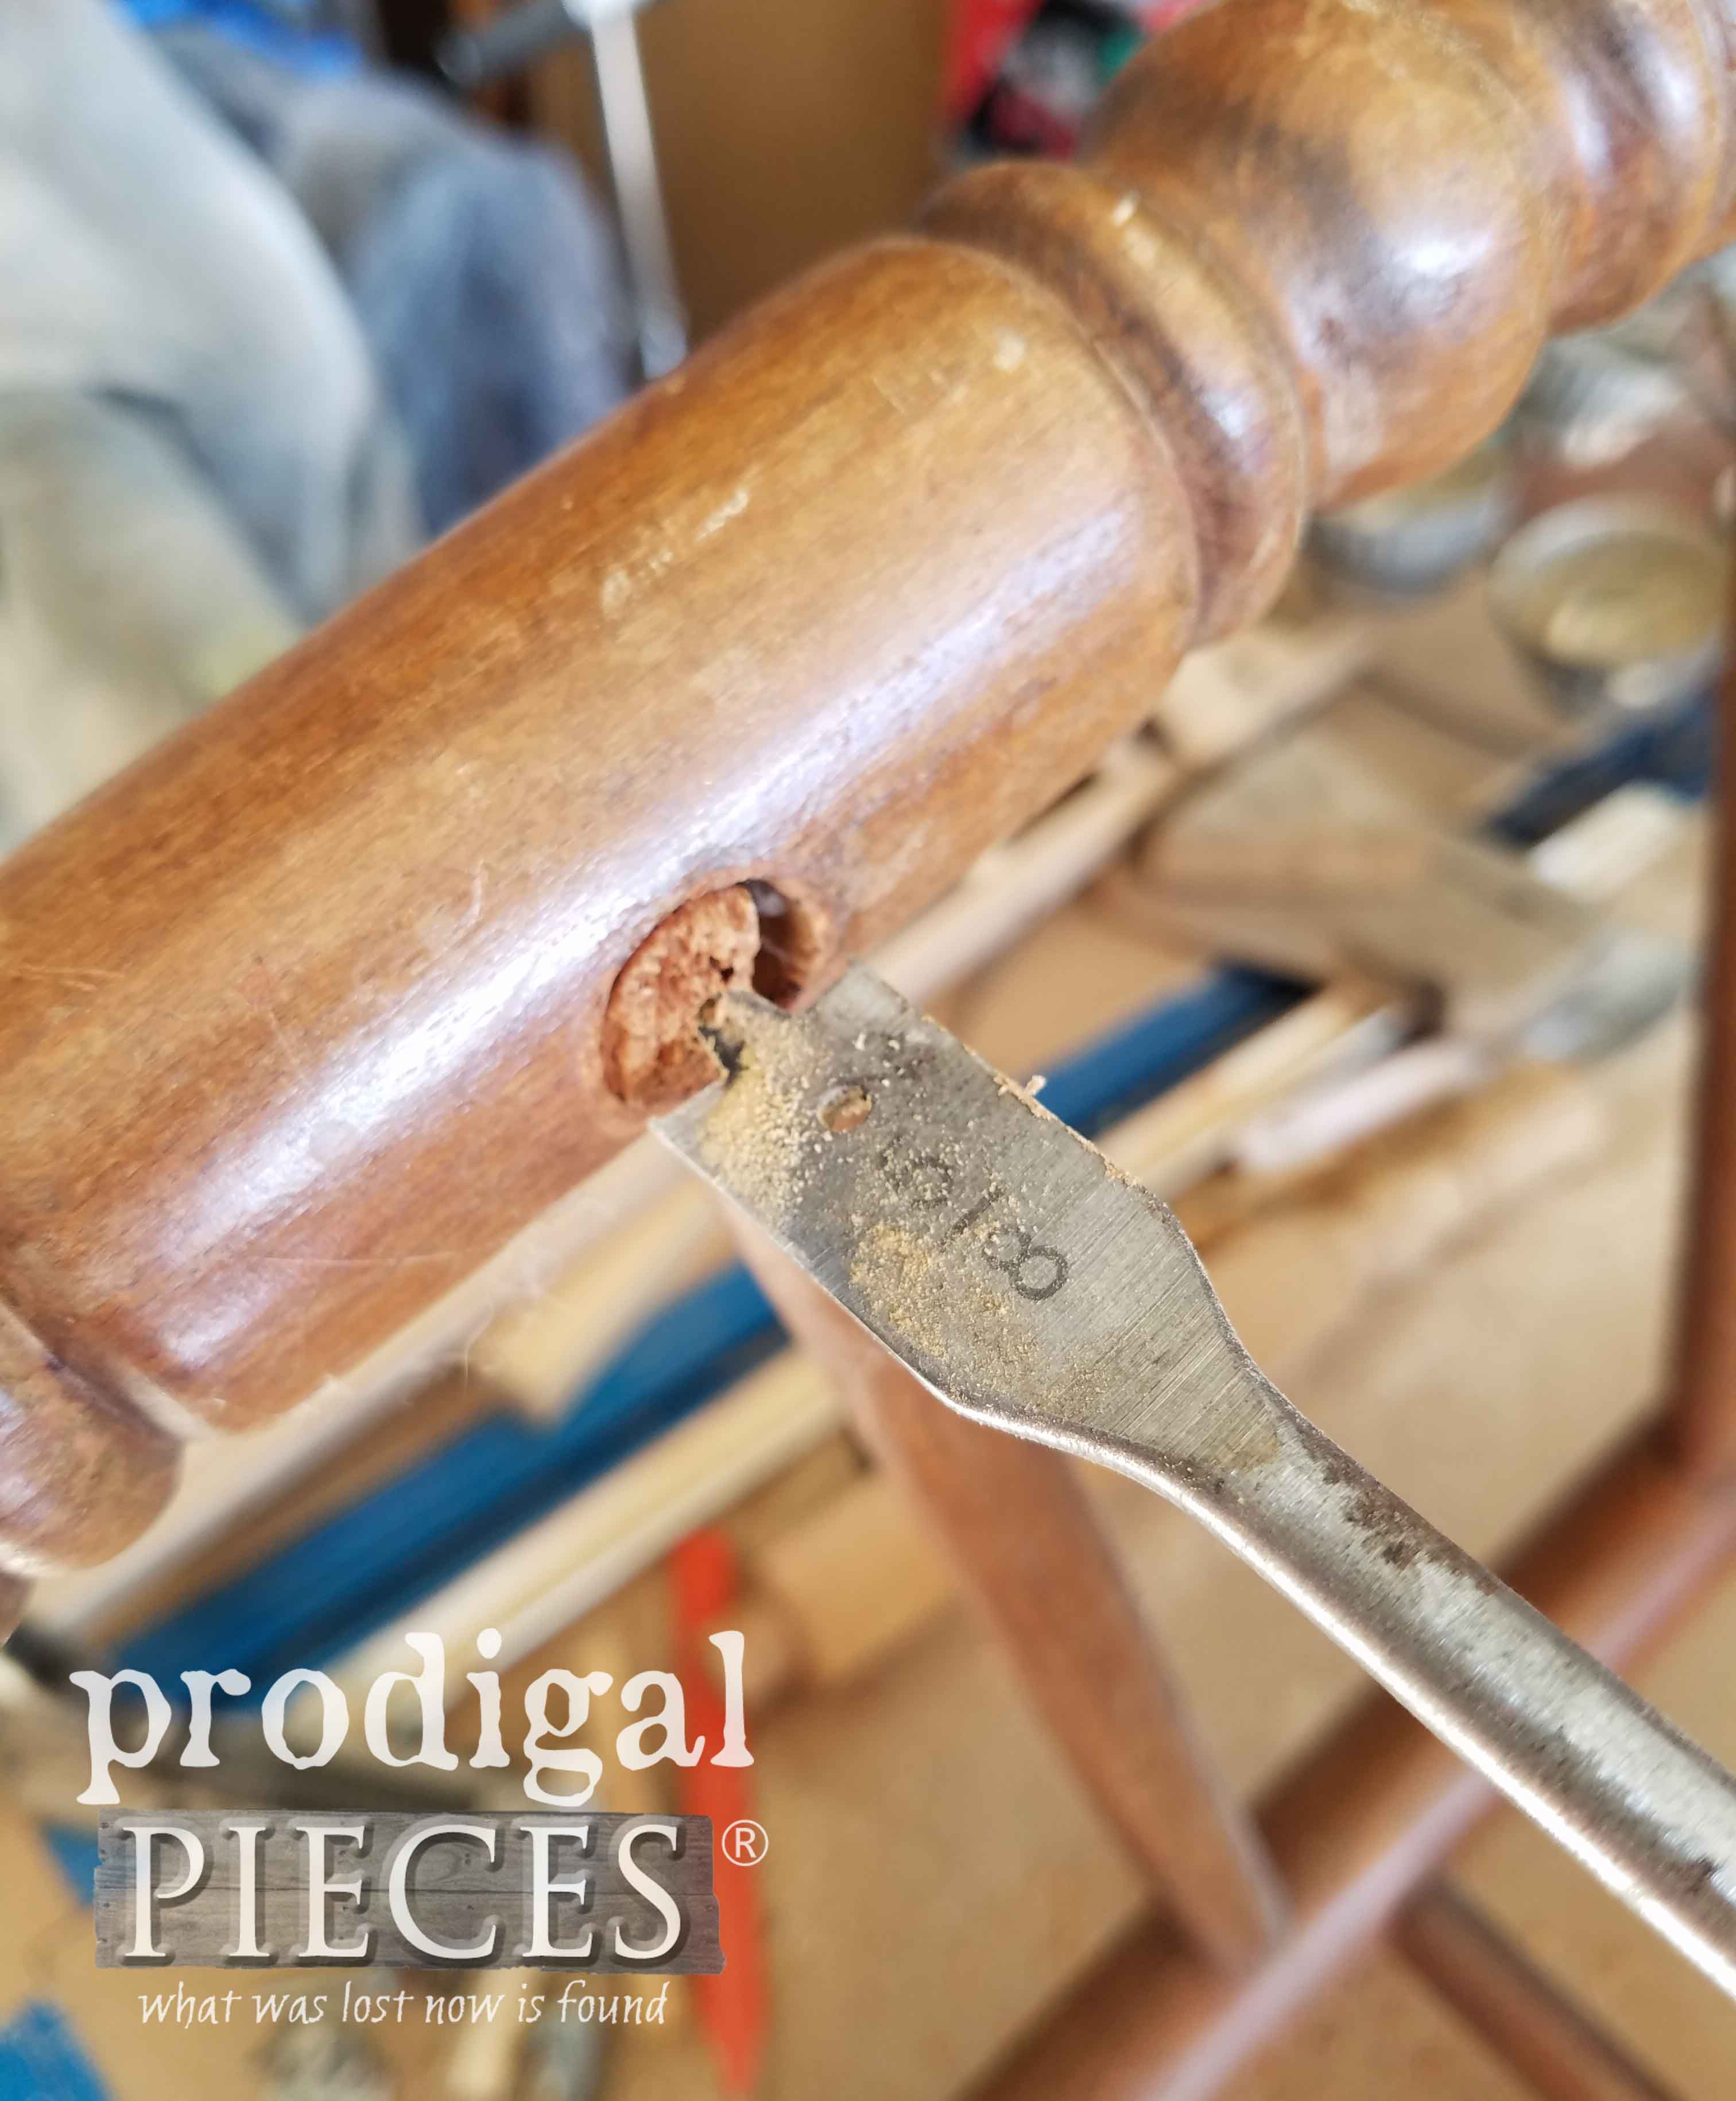 Spade Bit to Repair Chair | prodigalpieces.com